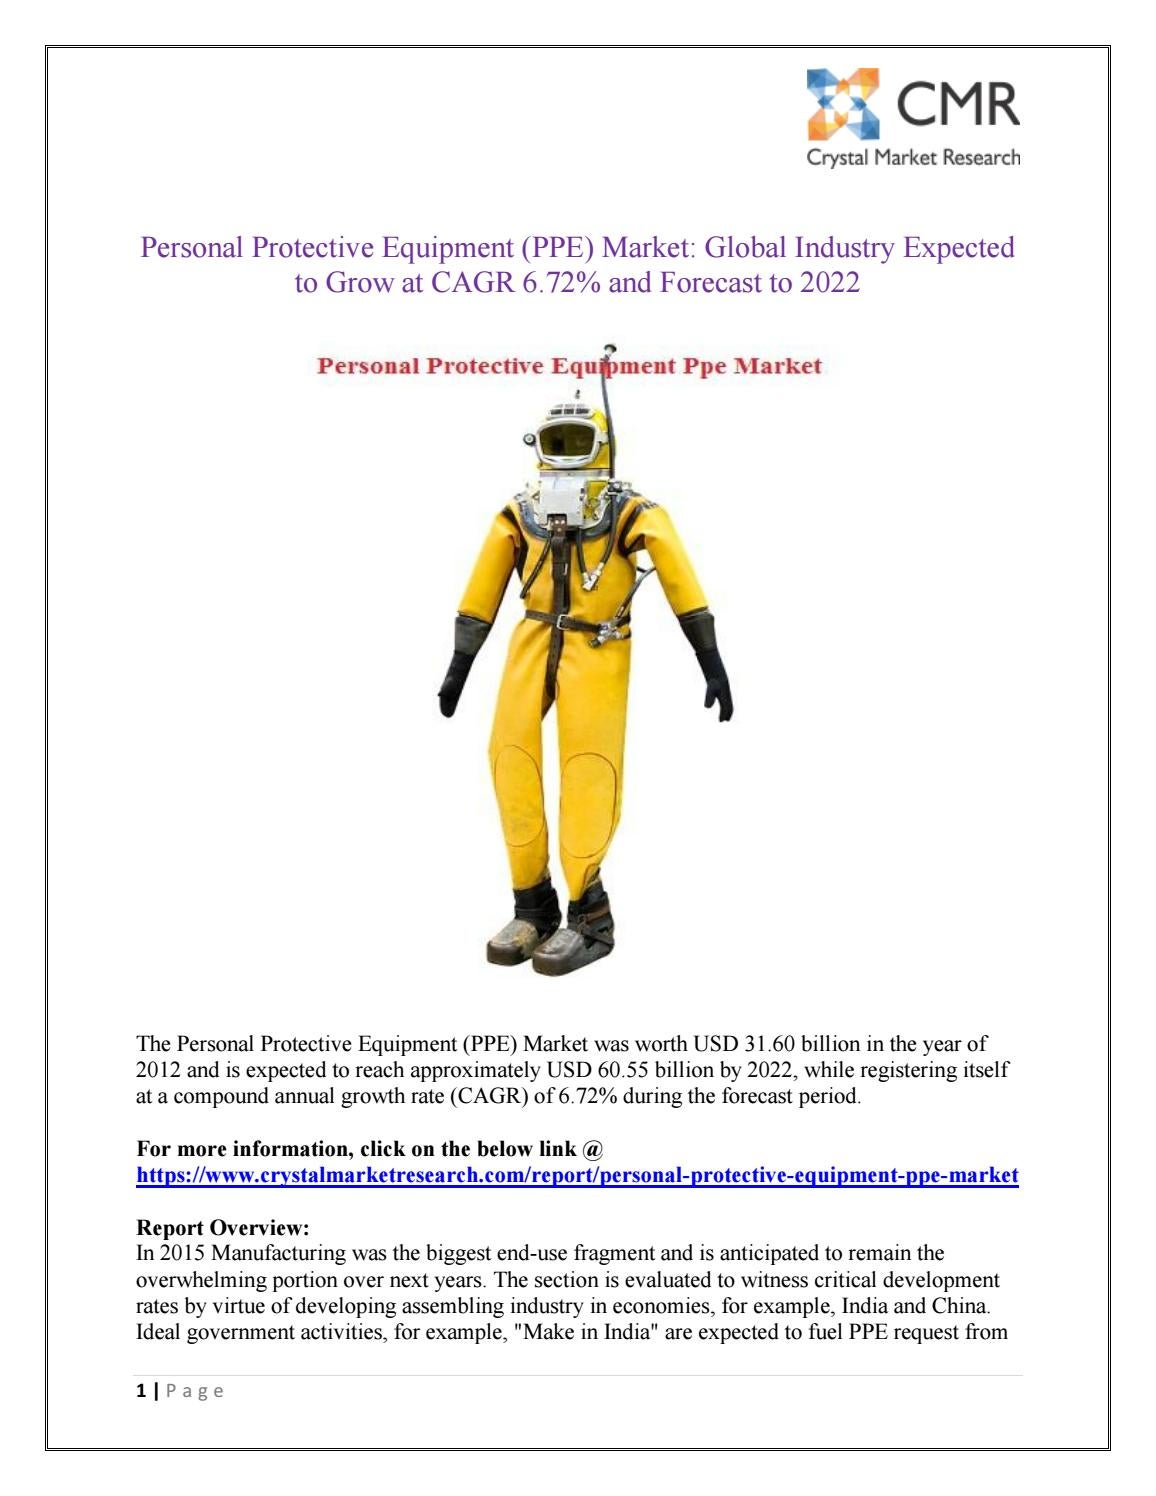 Personal protective equipment (ppe) market is projected to be around